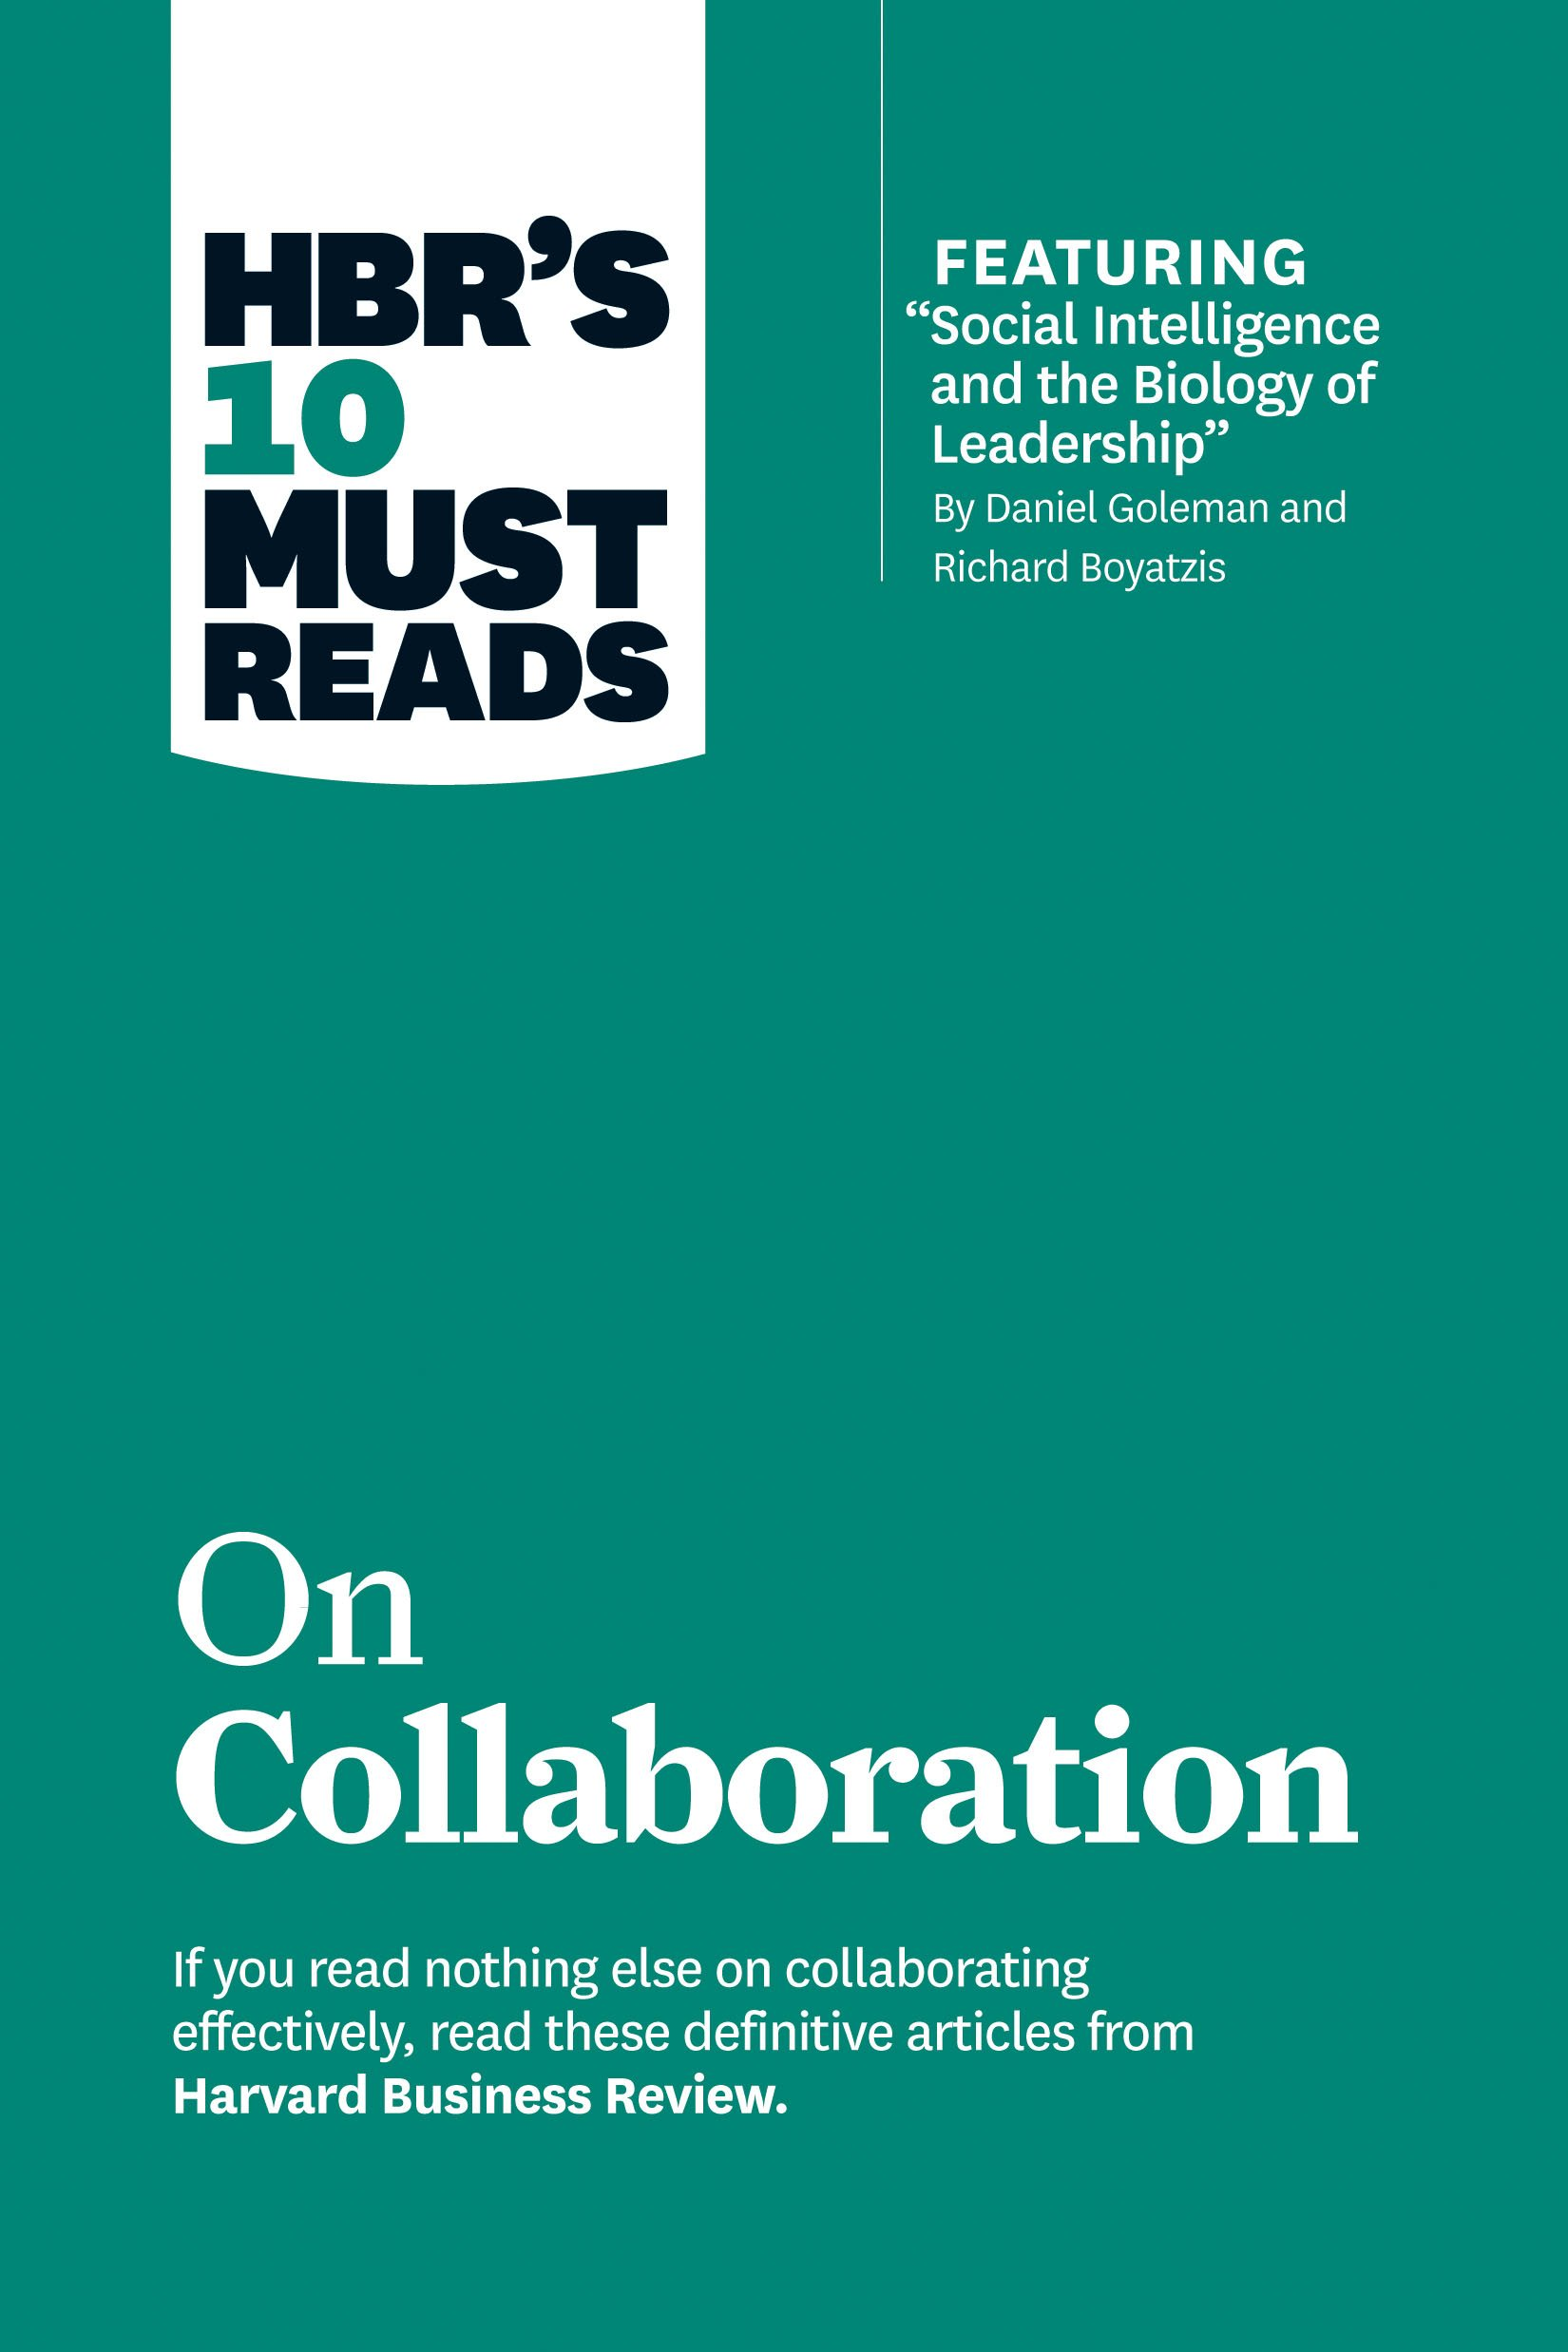 HBR's 10 Must Reads: On Collaboration (Harvard Business Review Must Reads)